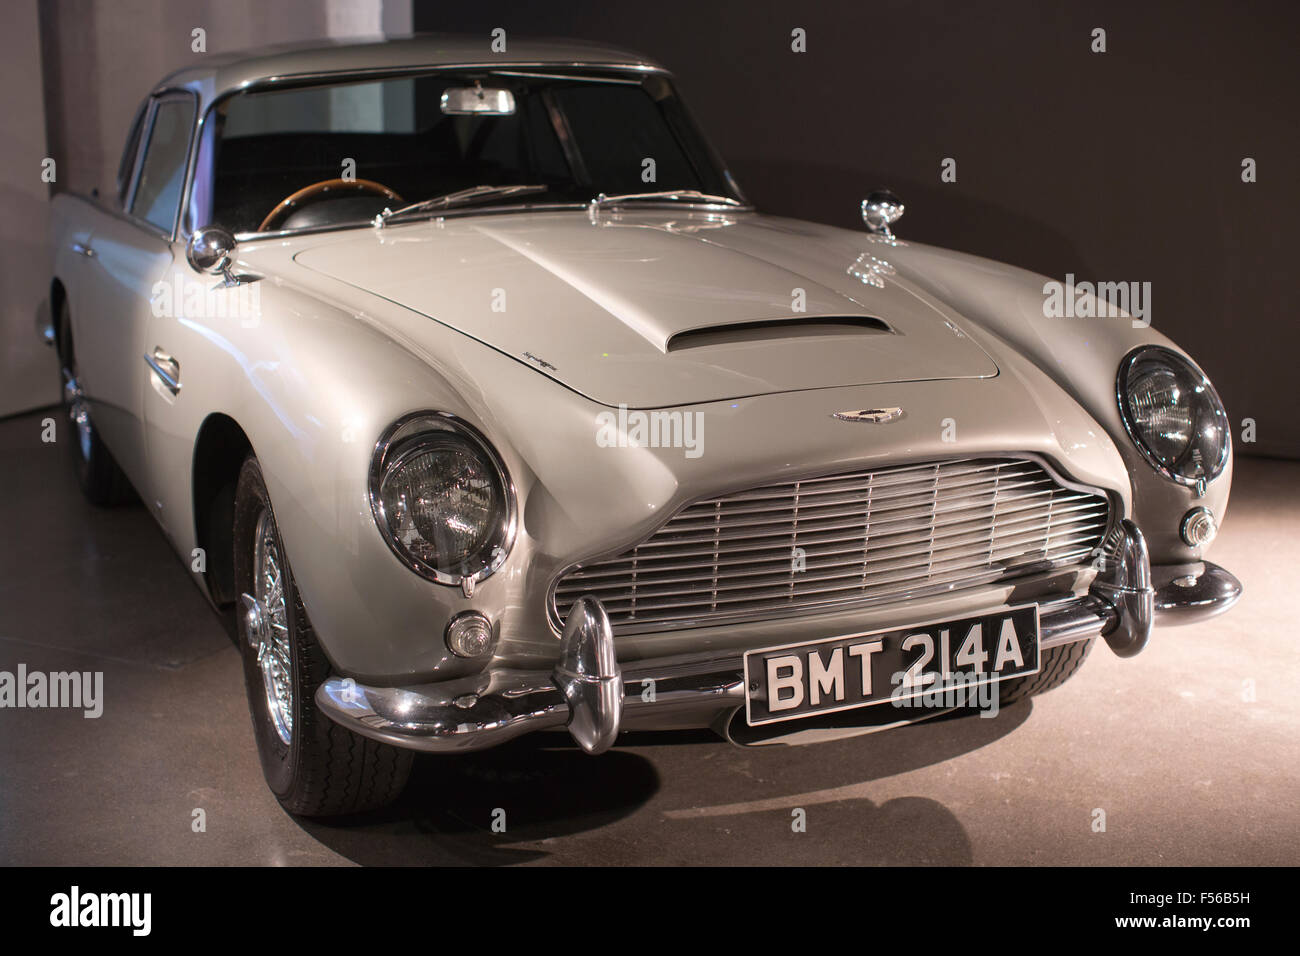 Aston Martin Db5 Used In The James Bond 2006 Casino Royale Film Stock Photo Alamy